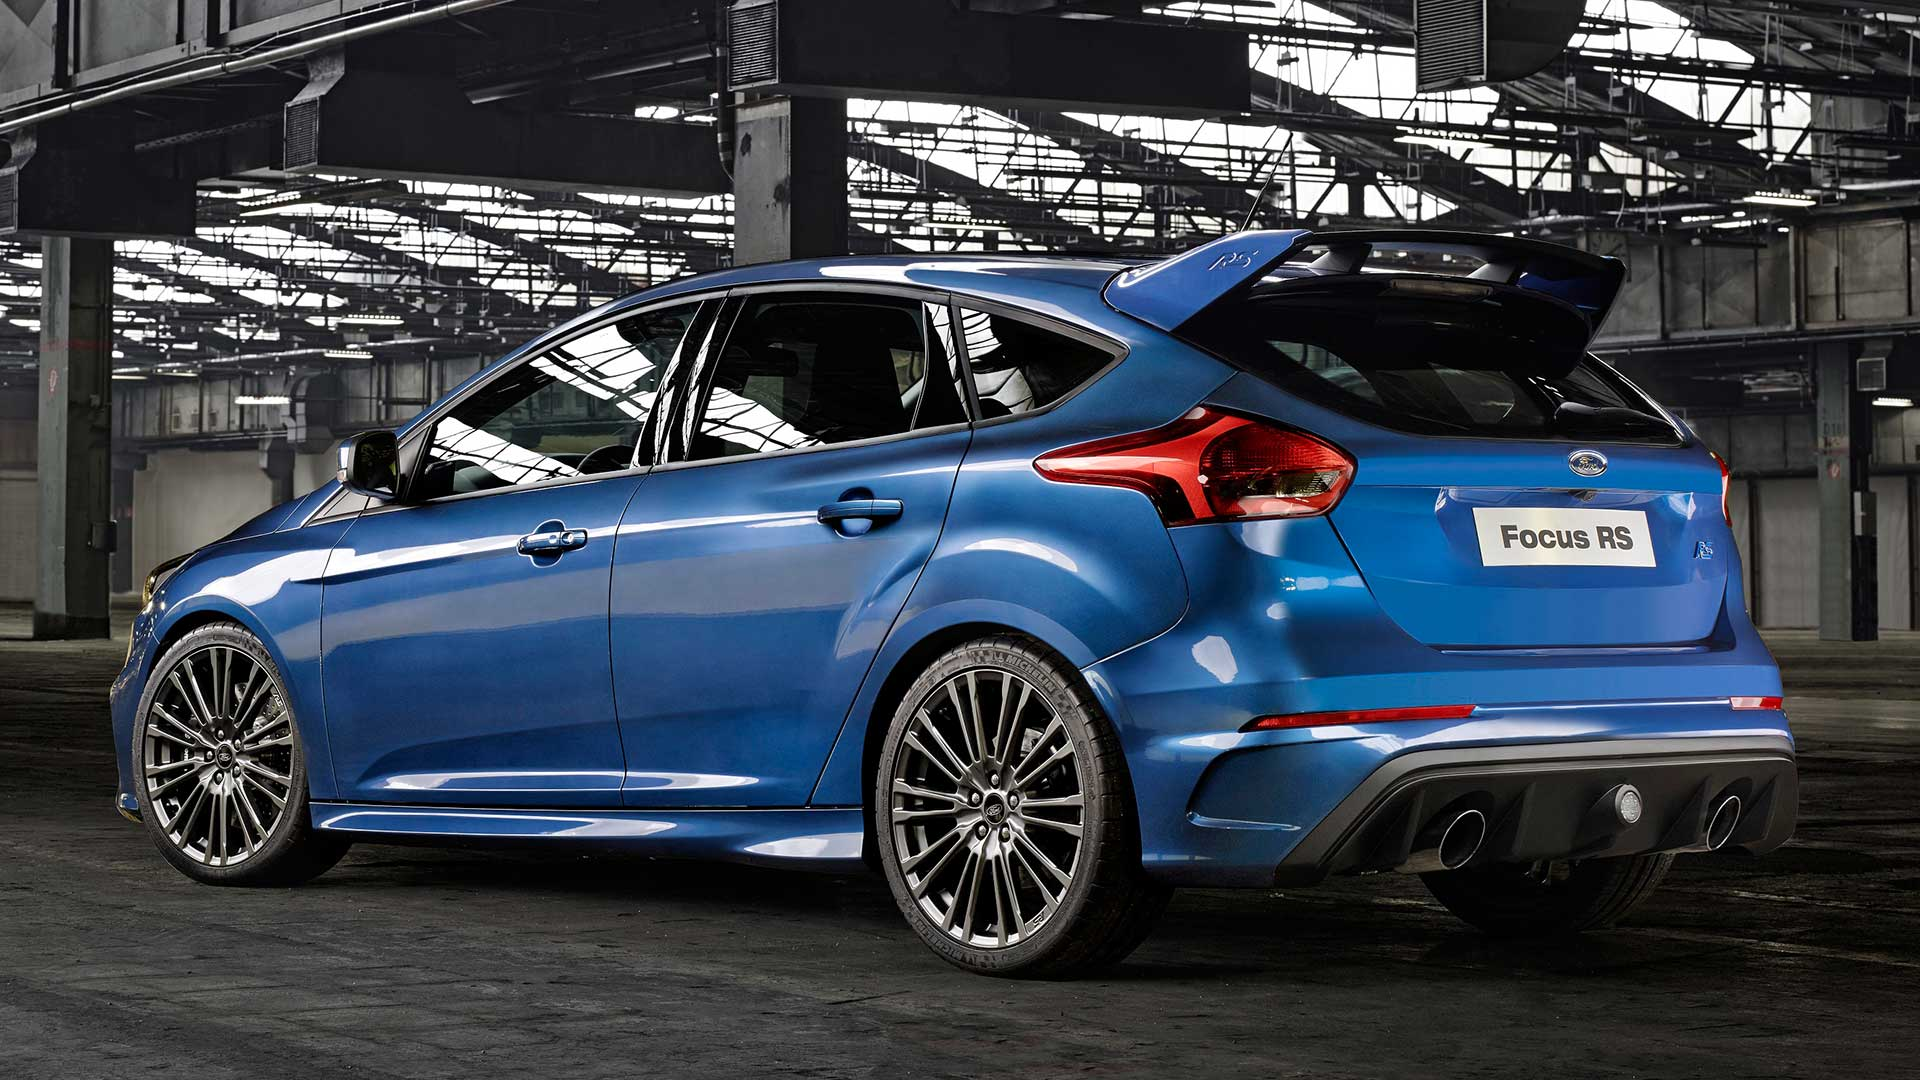 Rear 2015 Ford Focus RS Images cute Wallpapers 1920x1080